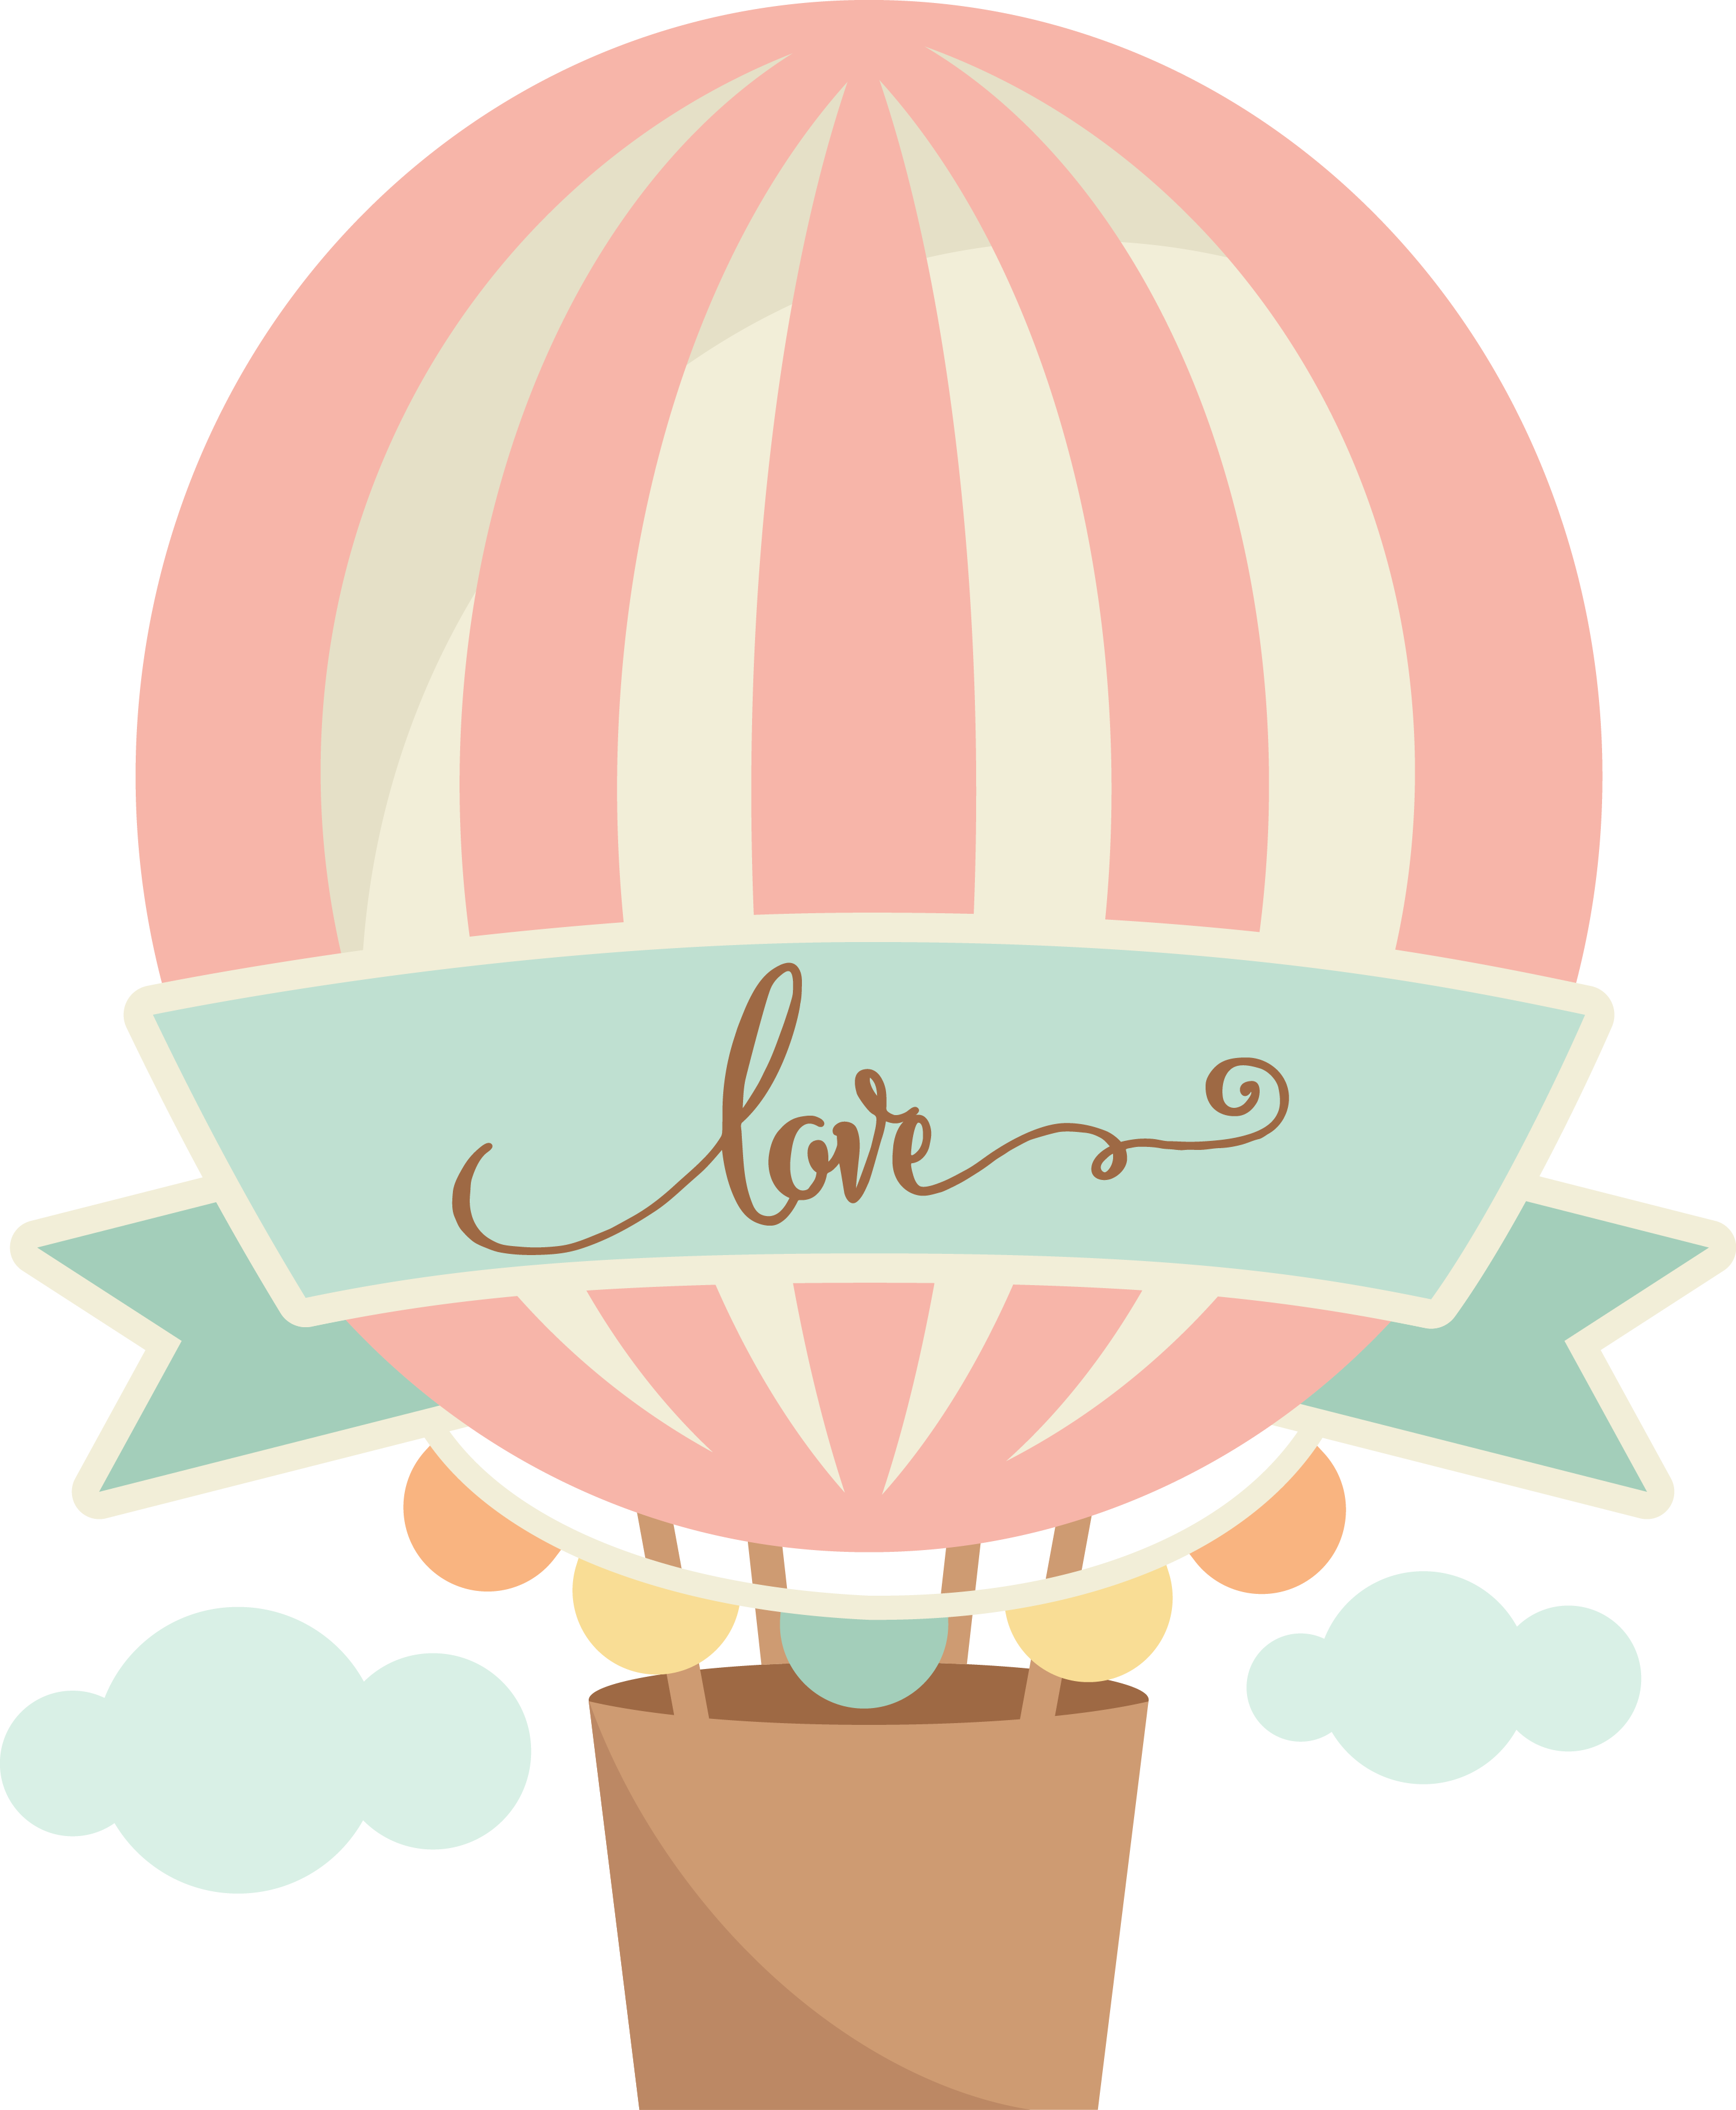 Mkc lovehotairballoon svg png. Diapers clipart cream